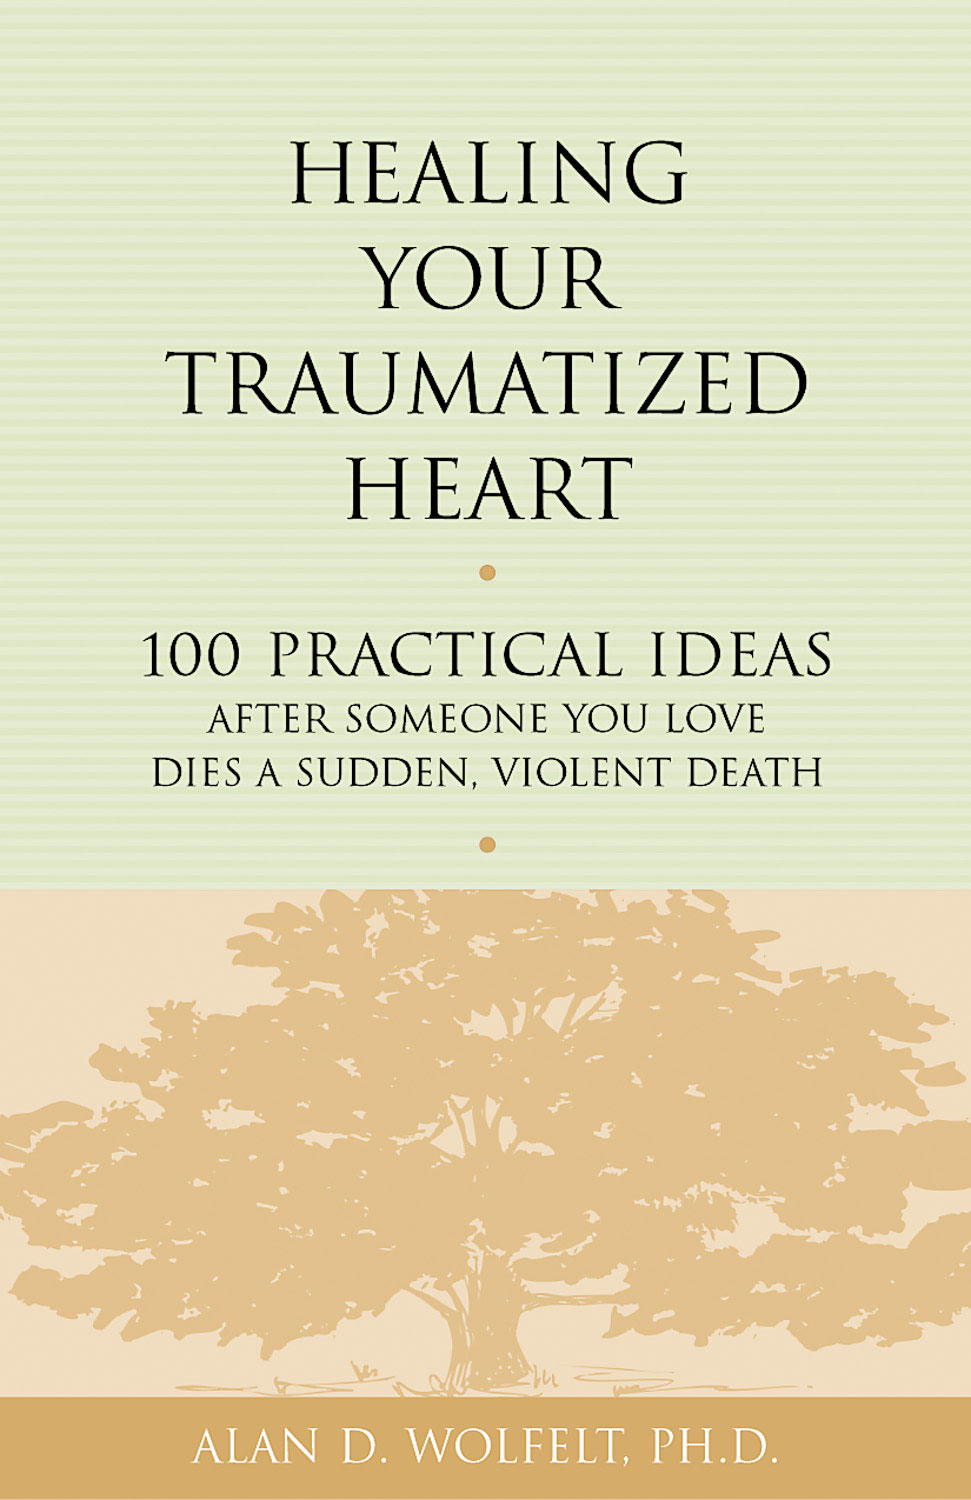 Healing Your Traumatized Heart By: Alan D. Wolfelt, PhD